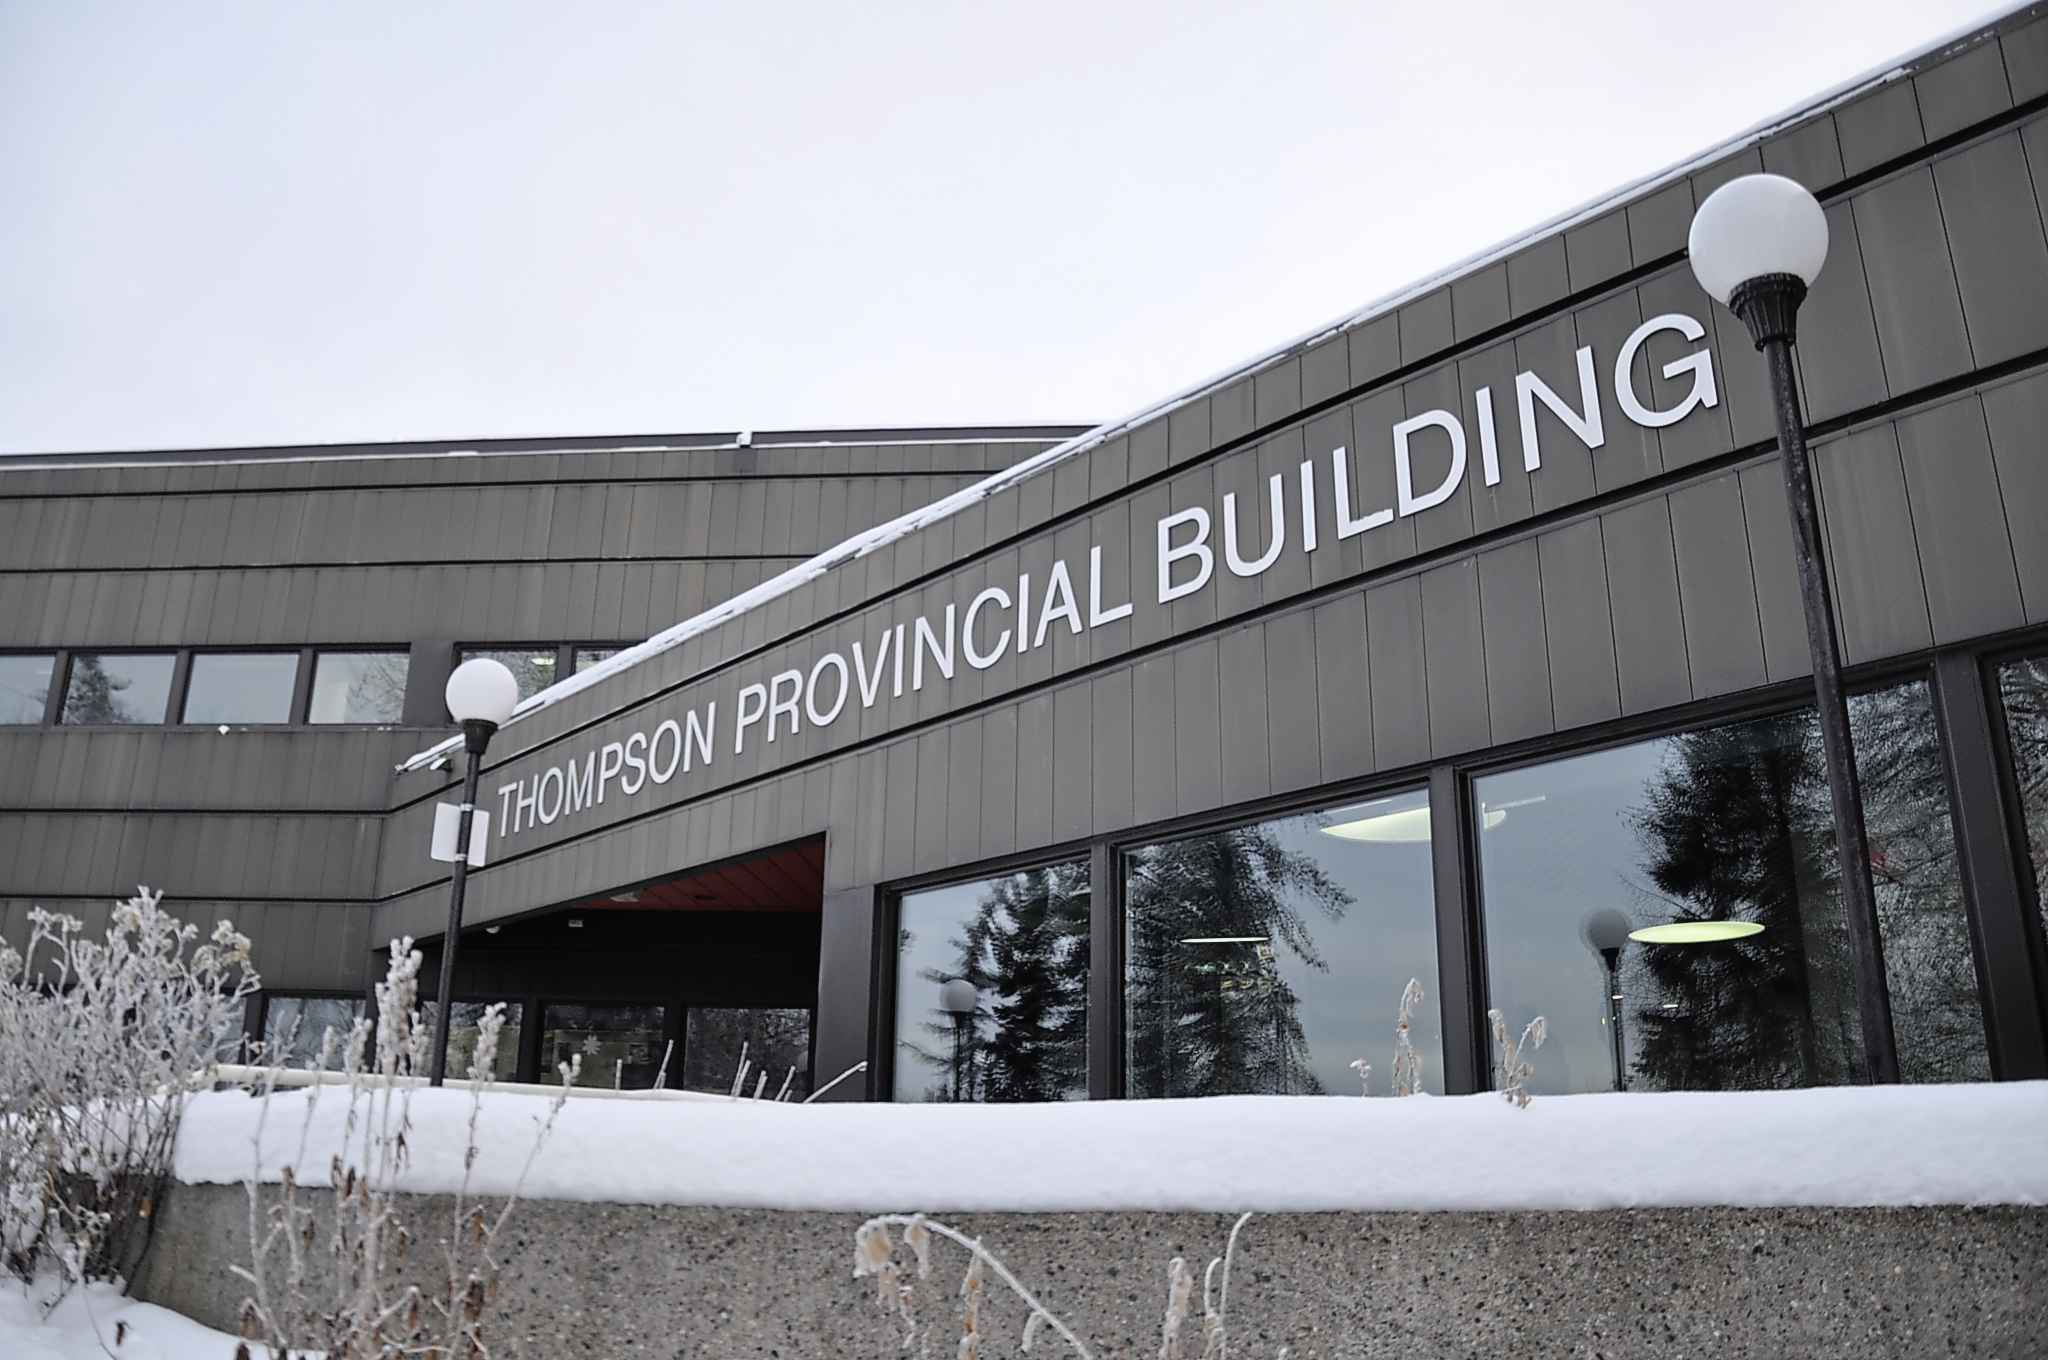 The Thompson provincial building houses Thompson's court which serves at least 13 remote communities.